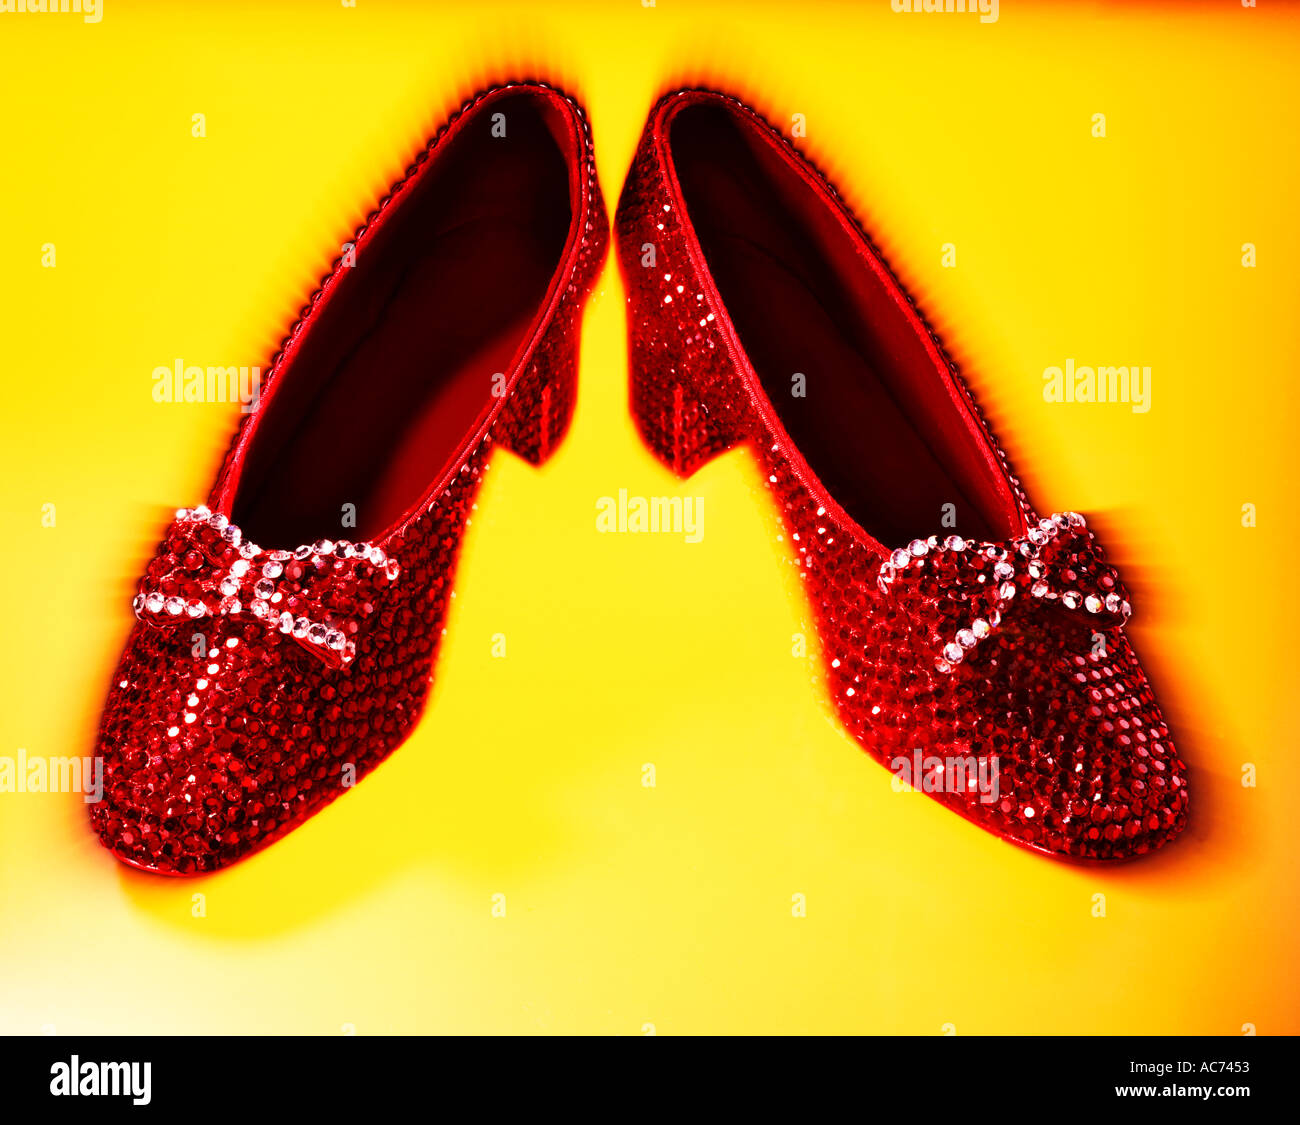 08baaecc427 red ruby slippers with bows on yellow background - Stock Image